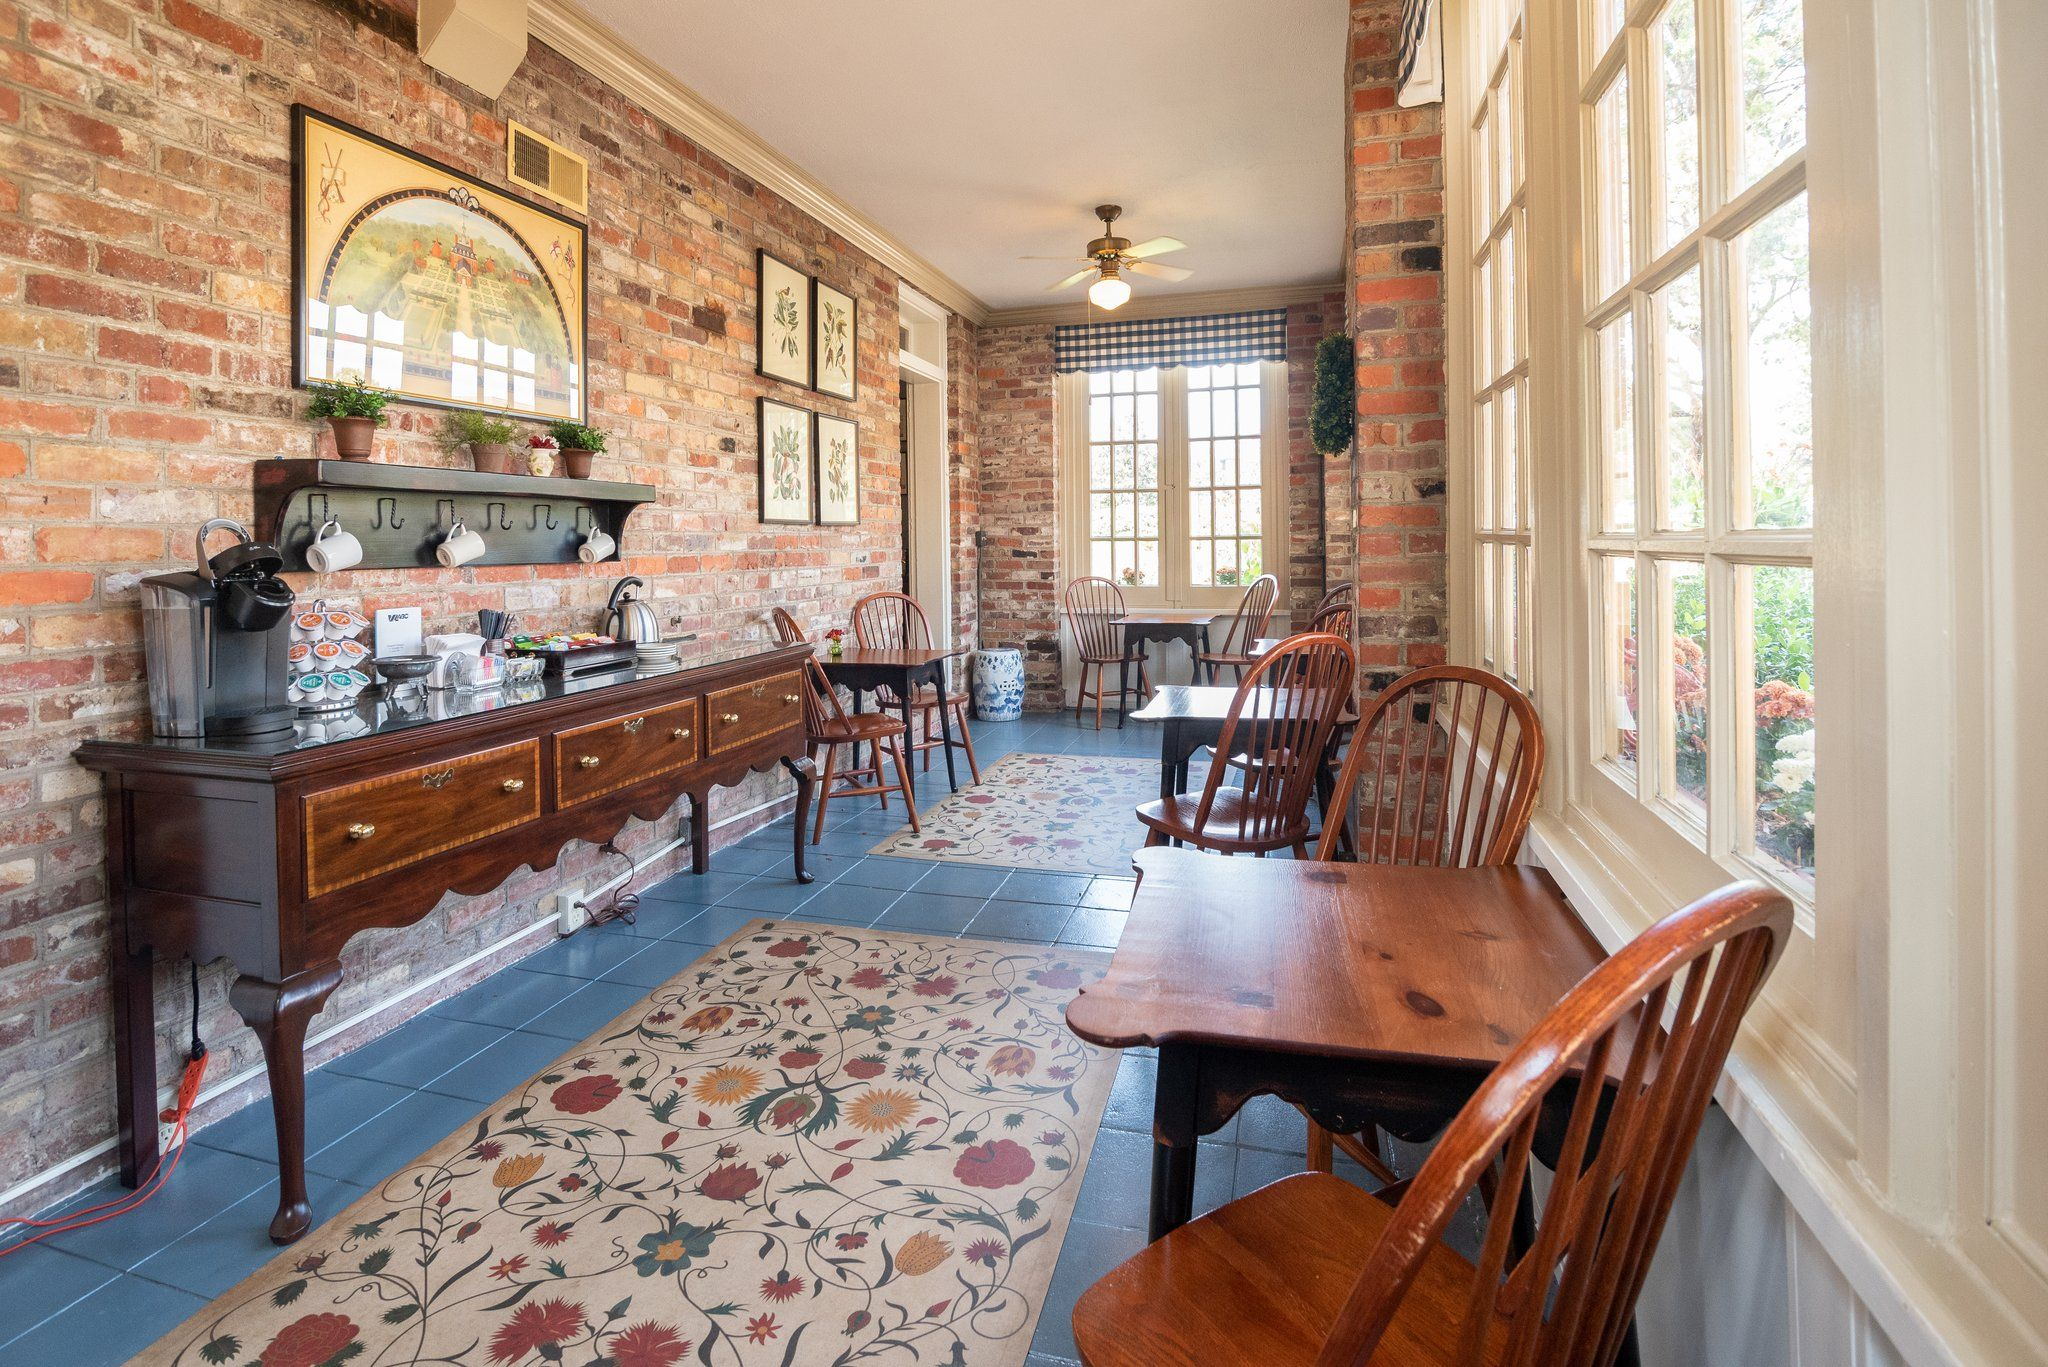 Tour the Property Williamsburg, Cedar, Bed and breakfast